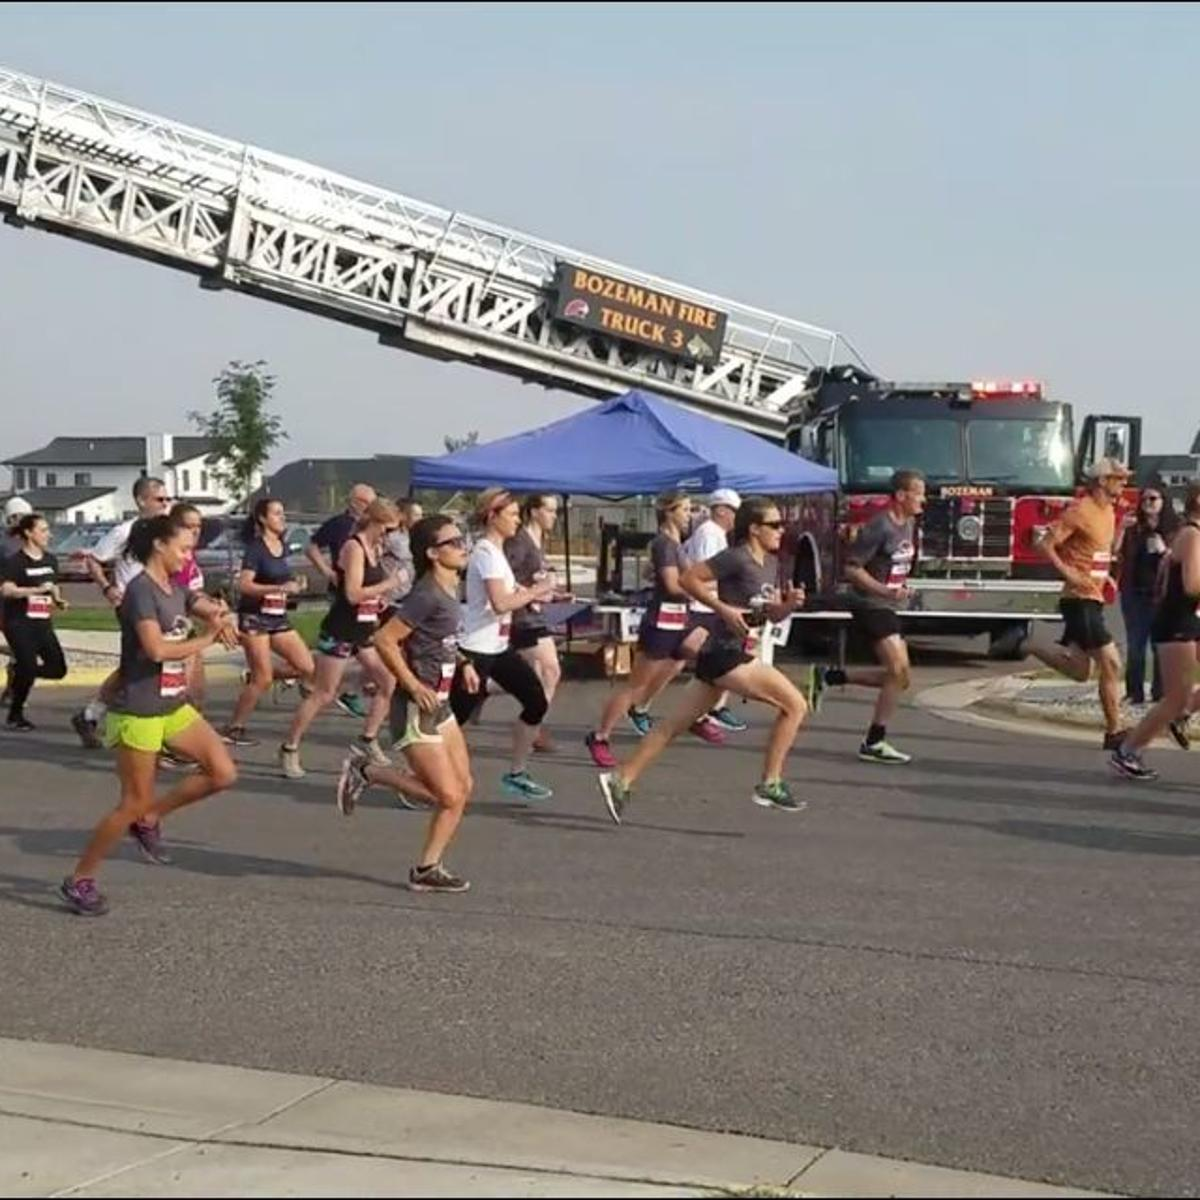 Second annual firefighters 5k to benefit Bozeman family of teen with